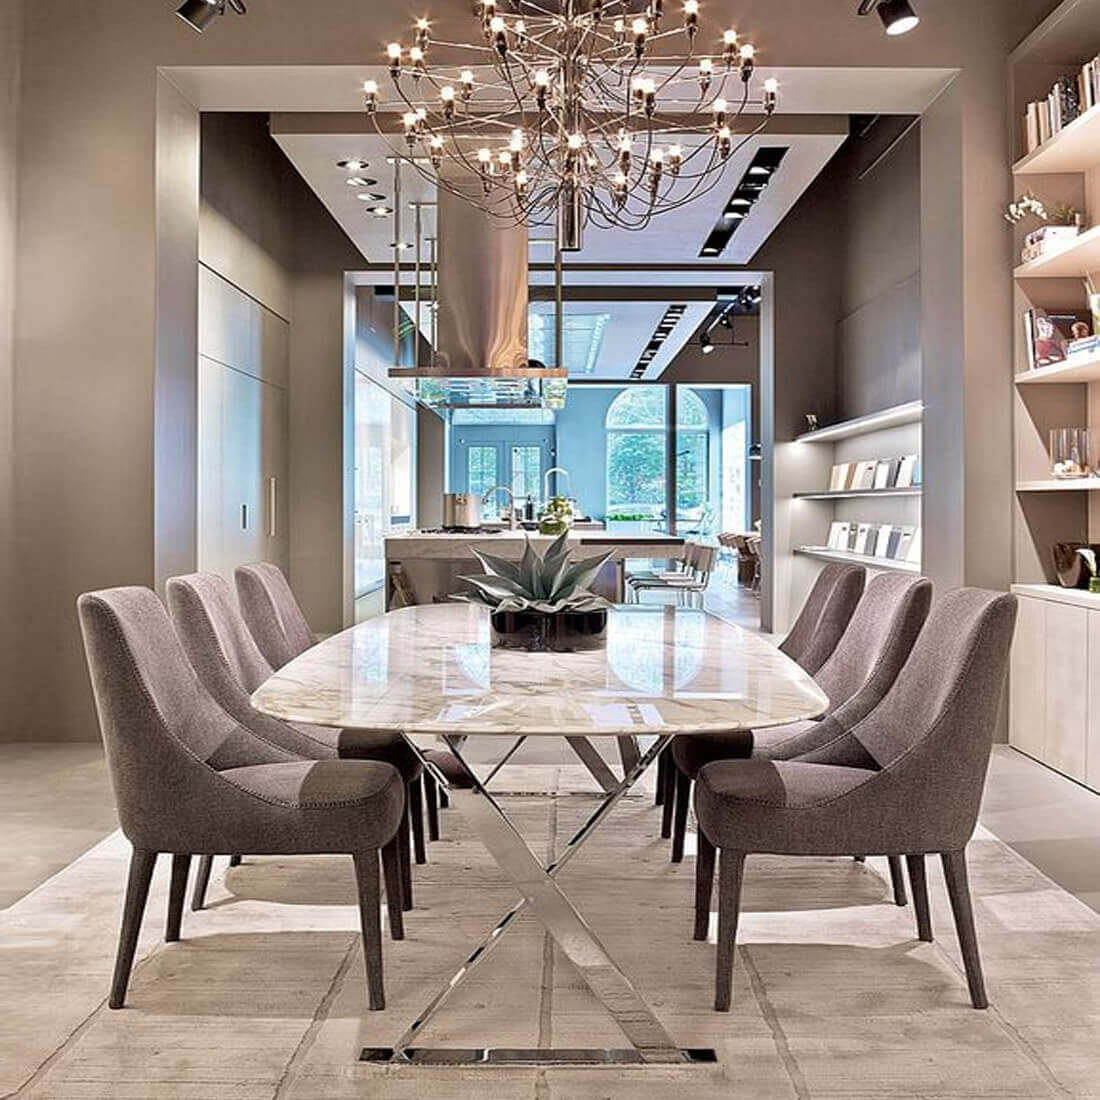 Modern Dining Room Furniture Accessories: Mermer Ile Alakali Herşe, Doğal